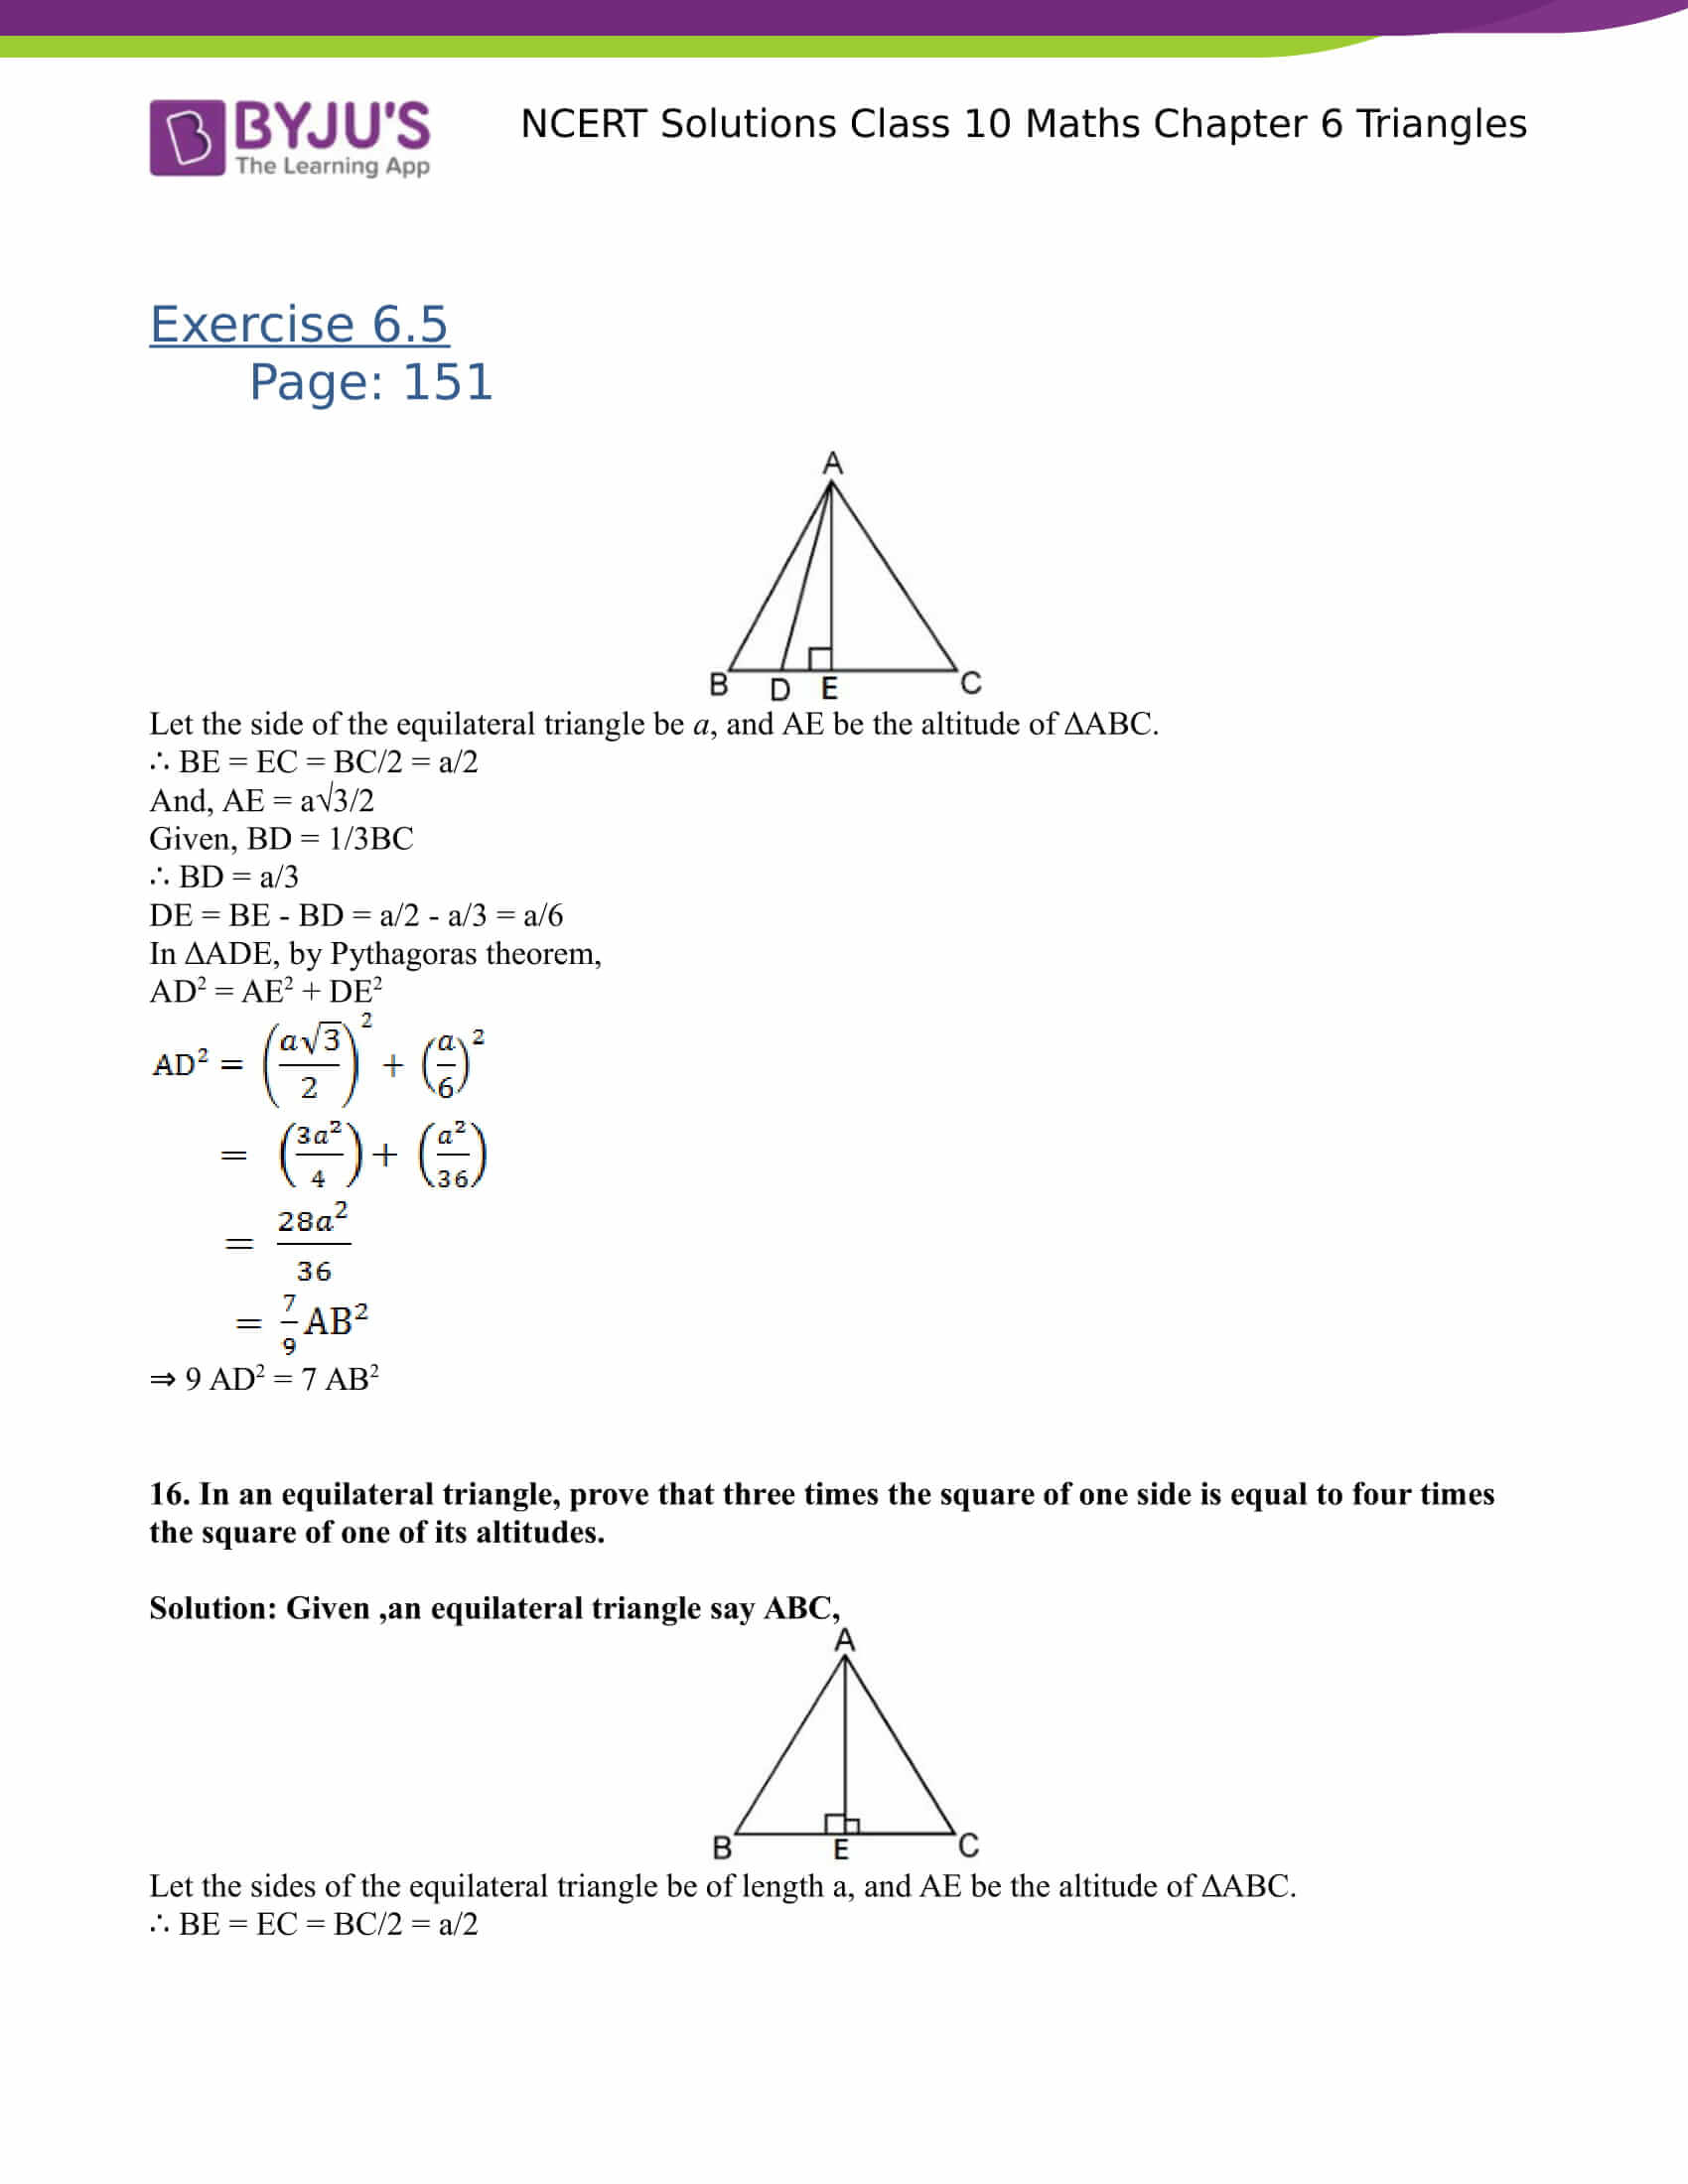 NCERT Solutions for class 10 Maths Chapter 6 Triangles Part 44